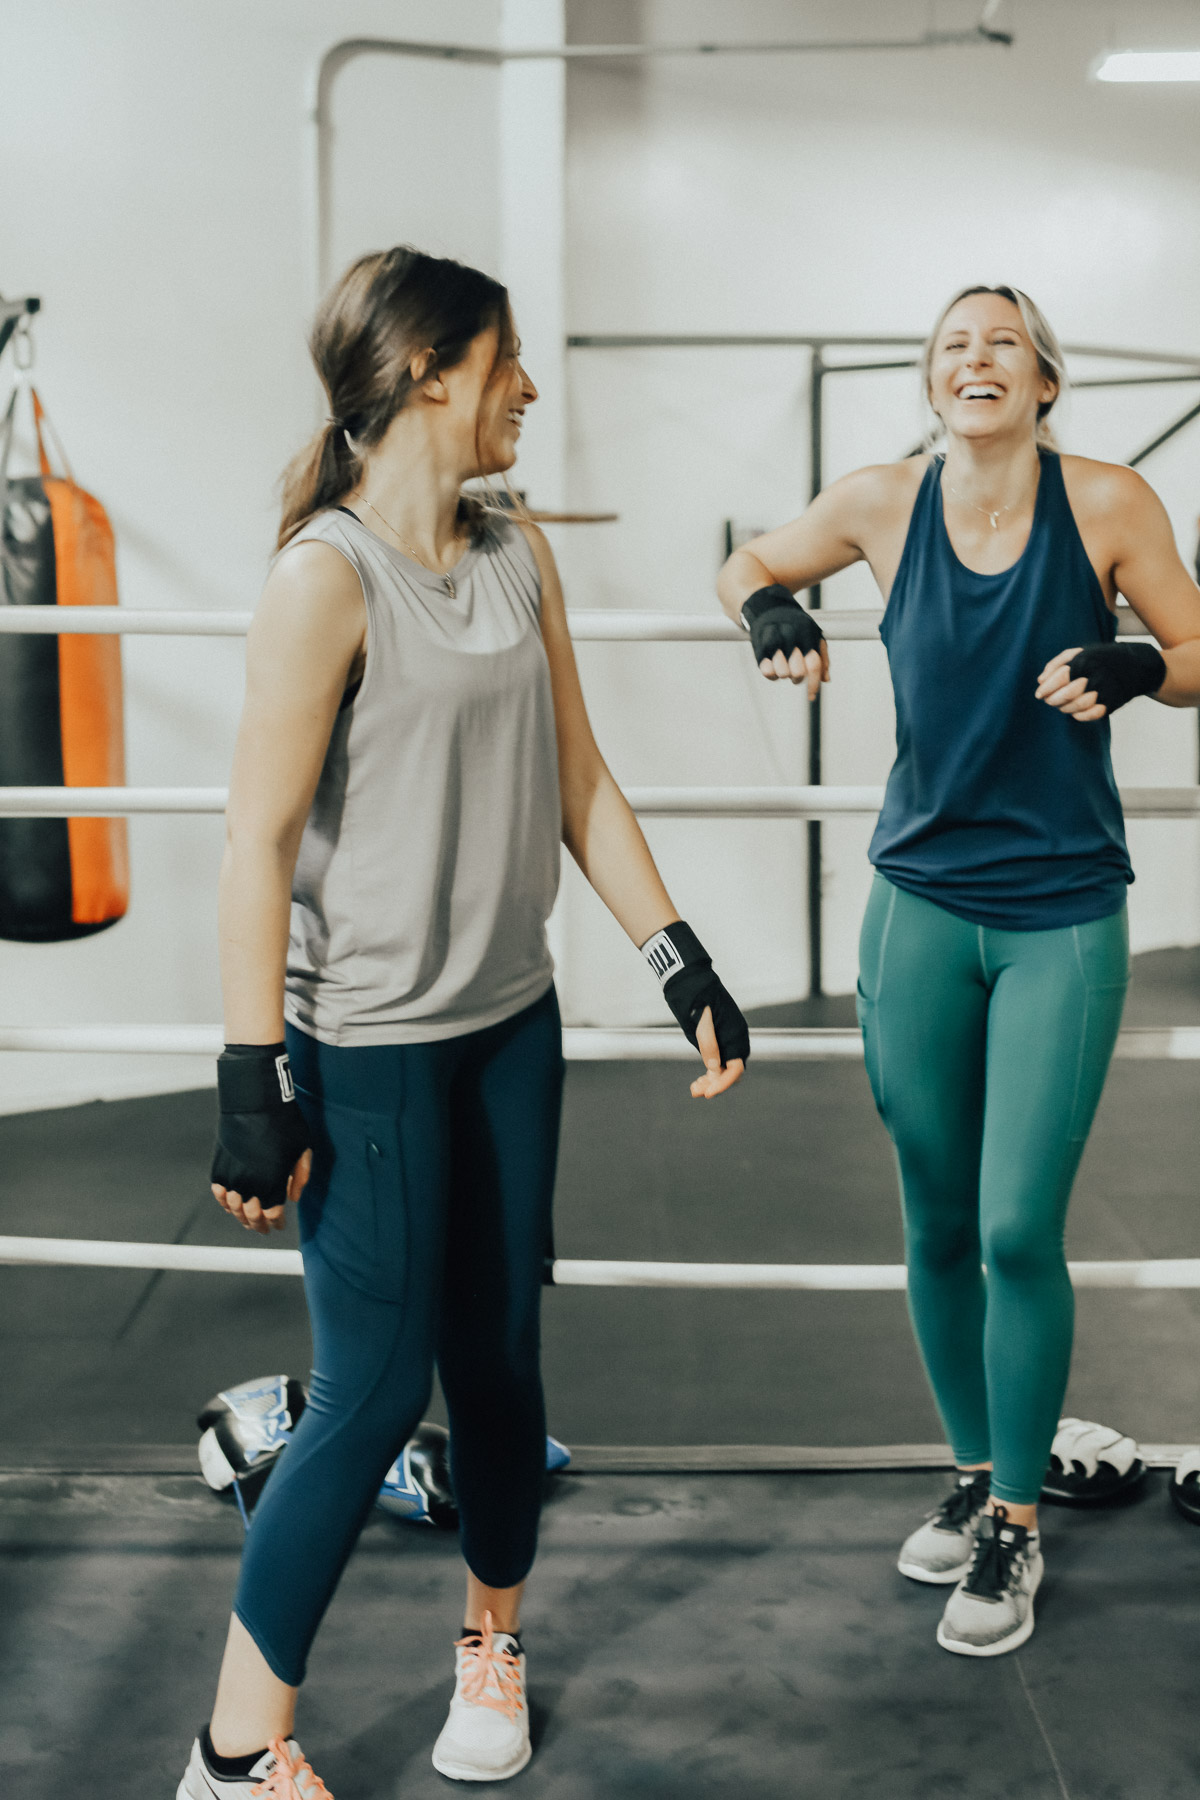 new workout class boxing in Athleta